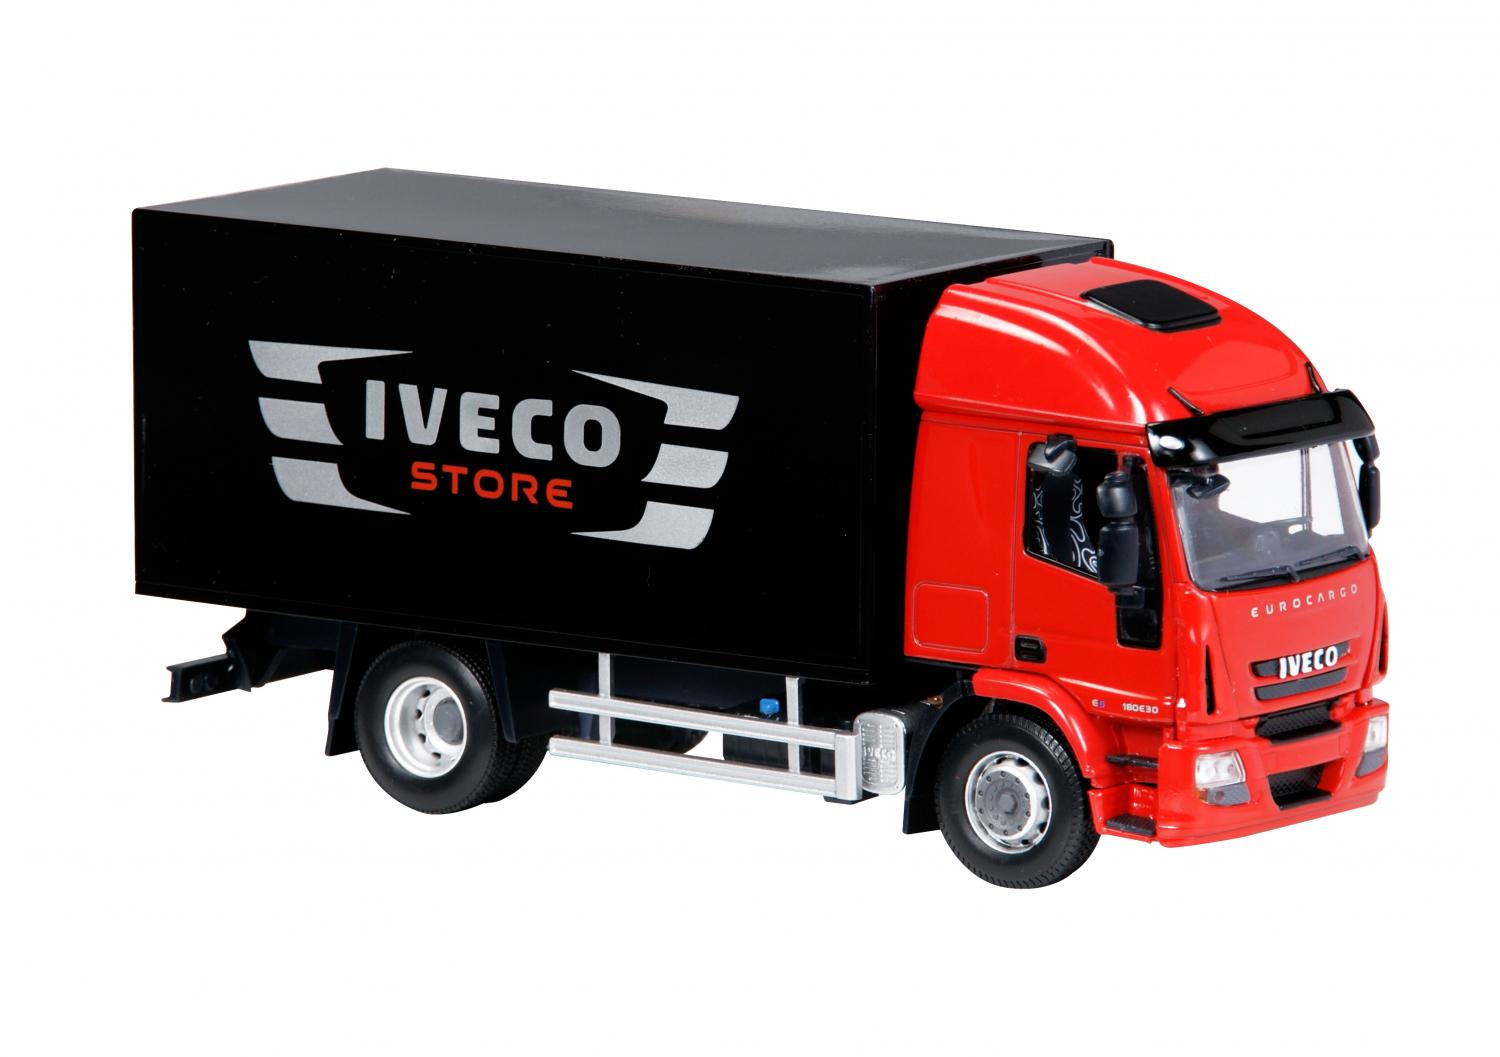 IVECO STORE - MODELS-GIFTS-OFFICE ACCESSORIES